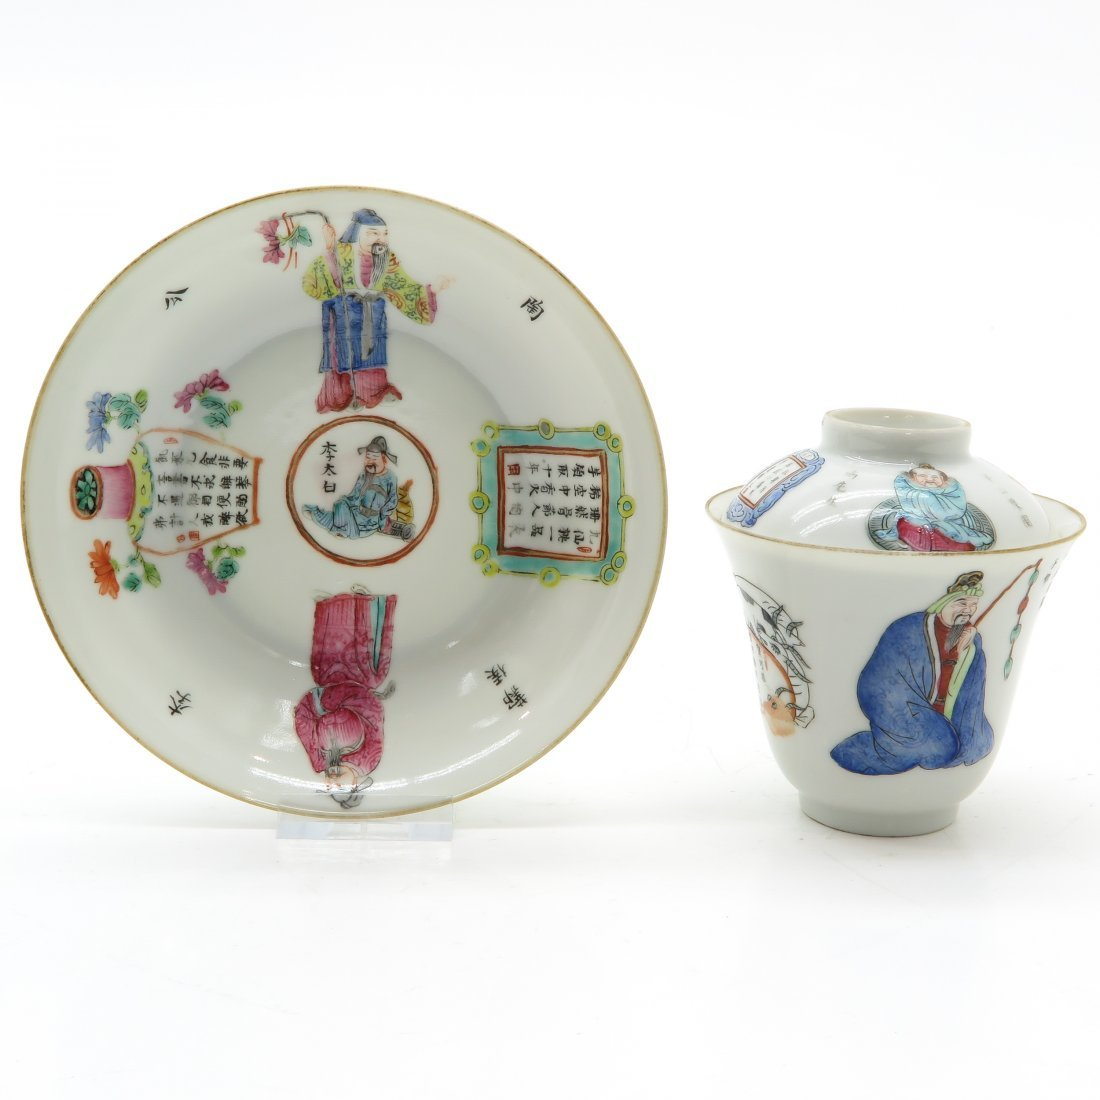 19th Century Wu Shuang Pu Decor Cup and Saucer